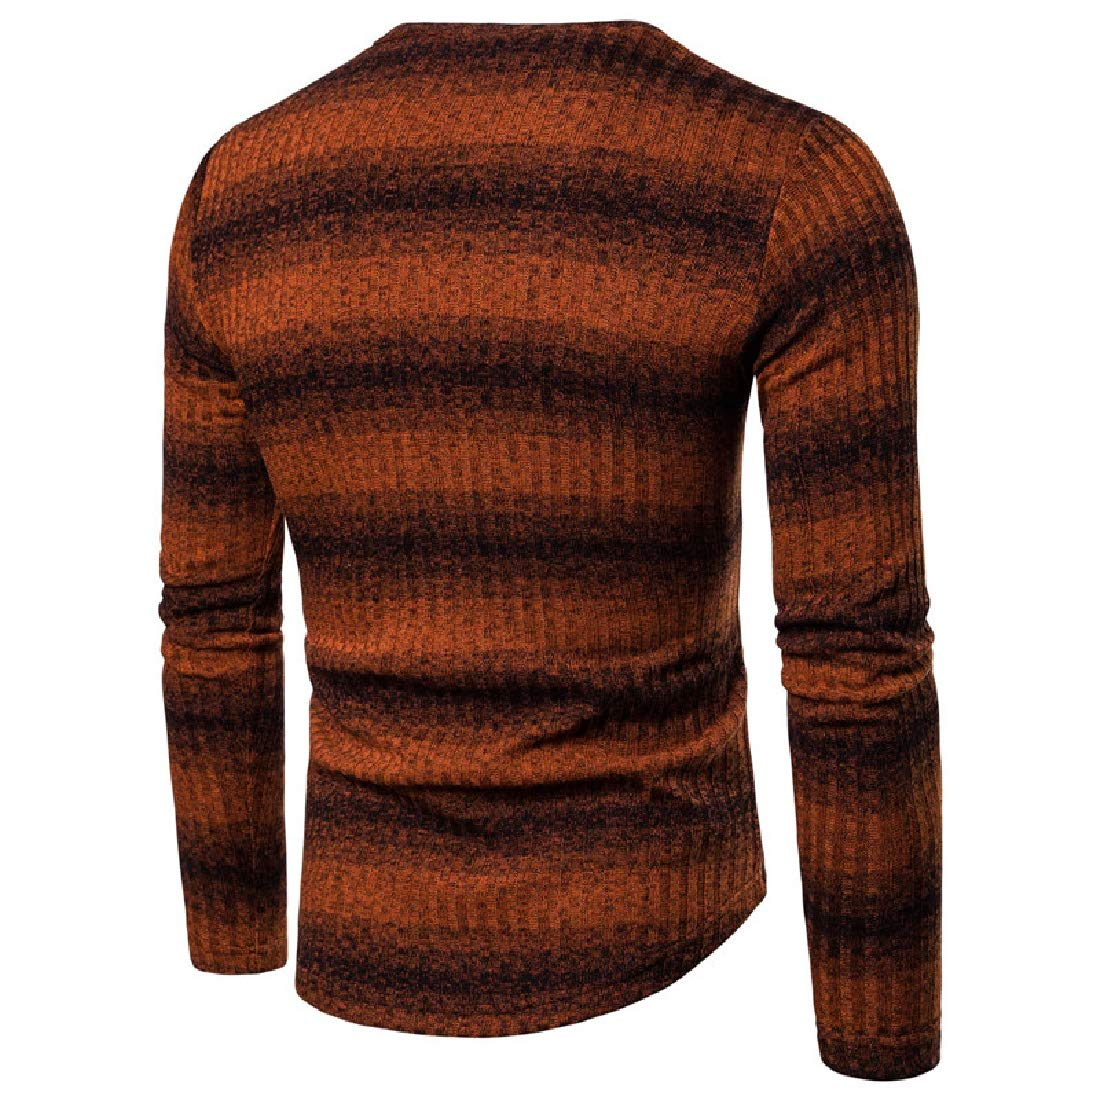 YUNY Mens Stripes Gradient Ramp Thickened Warm Knit Crew-Neck Pullover Orange XL